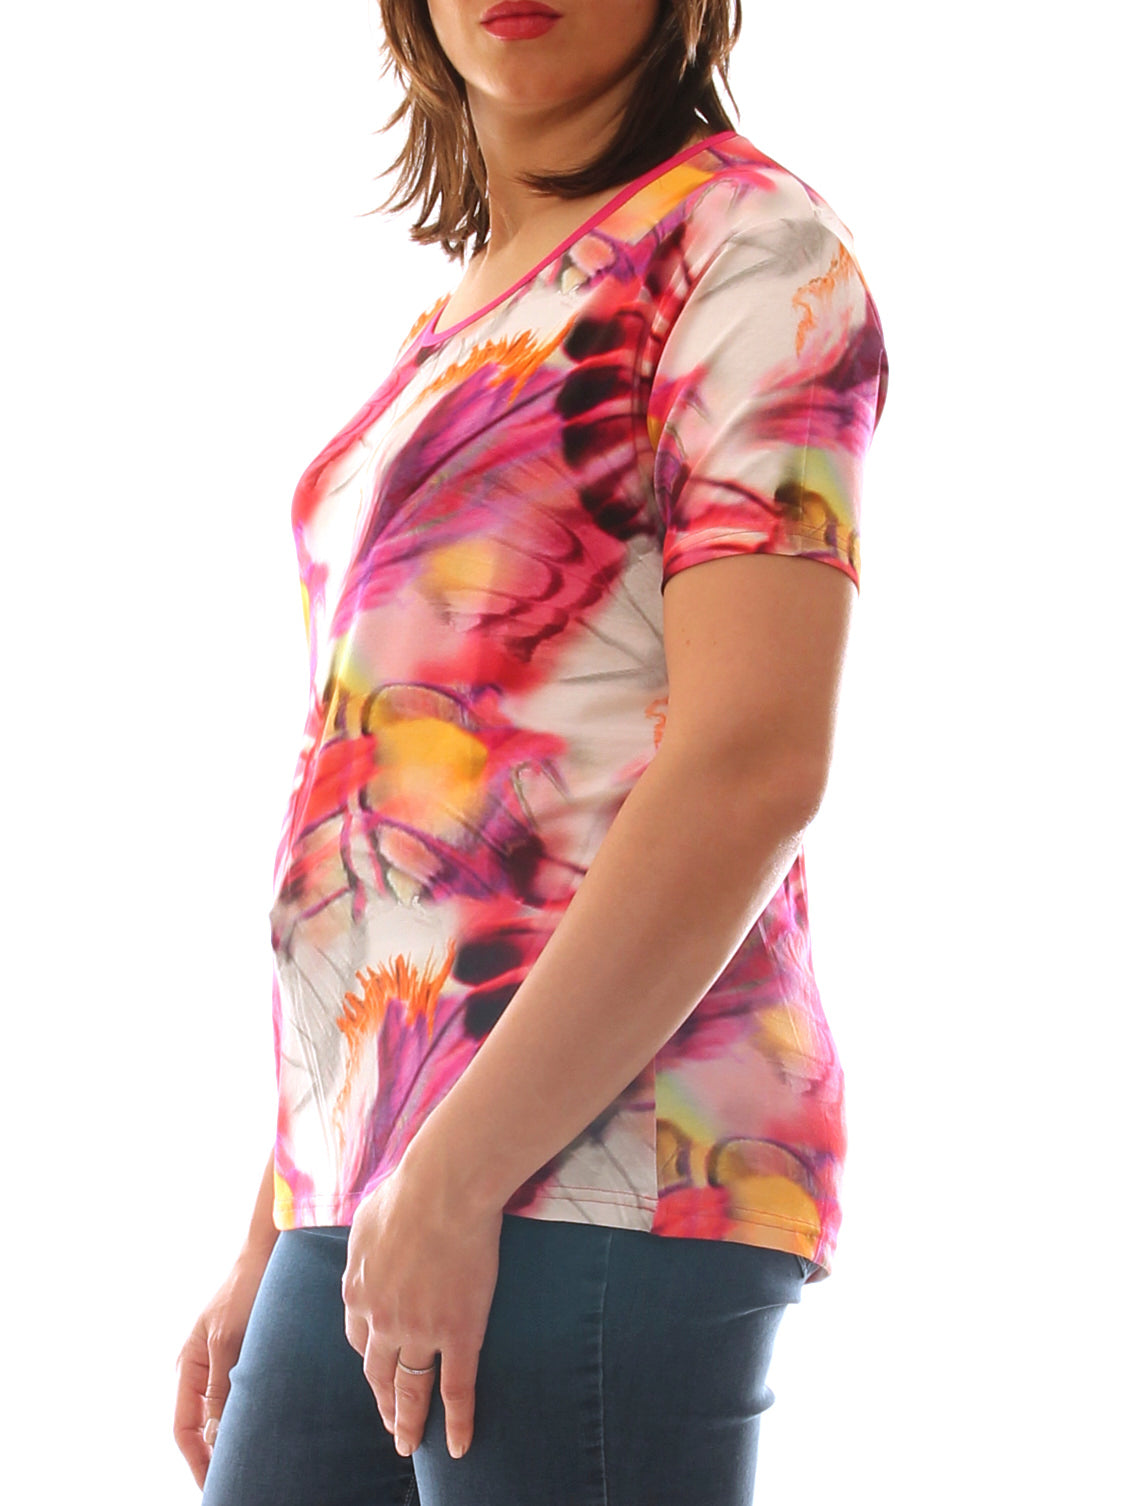 T-shirt donna in jersey stretch fantasia multicolor taglia morbida - Luanaromizi.com